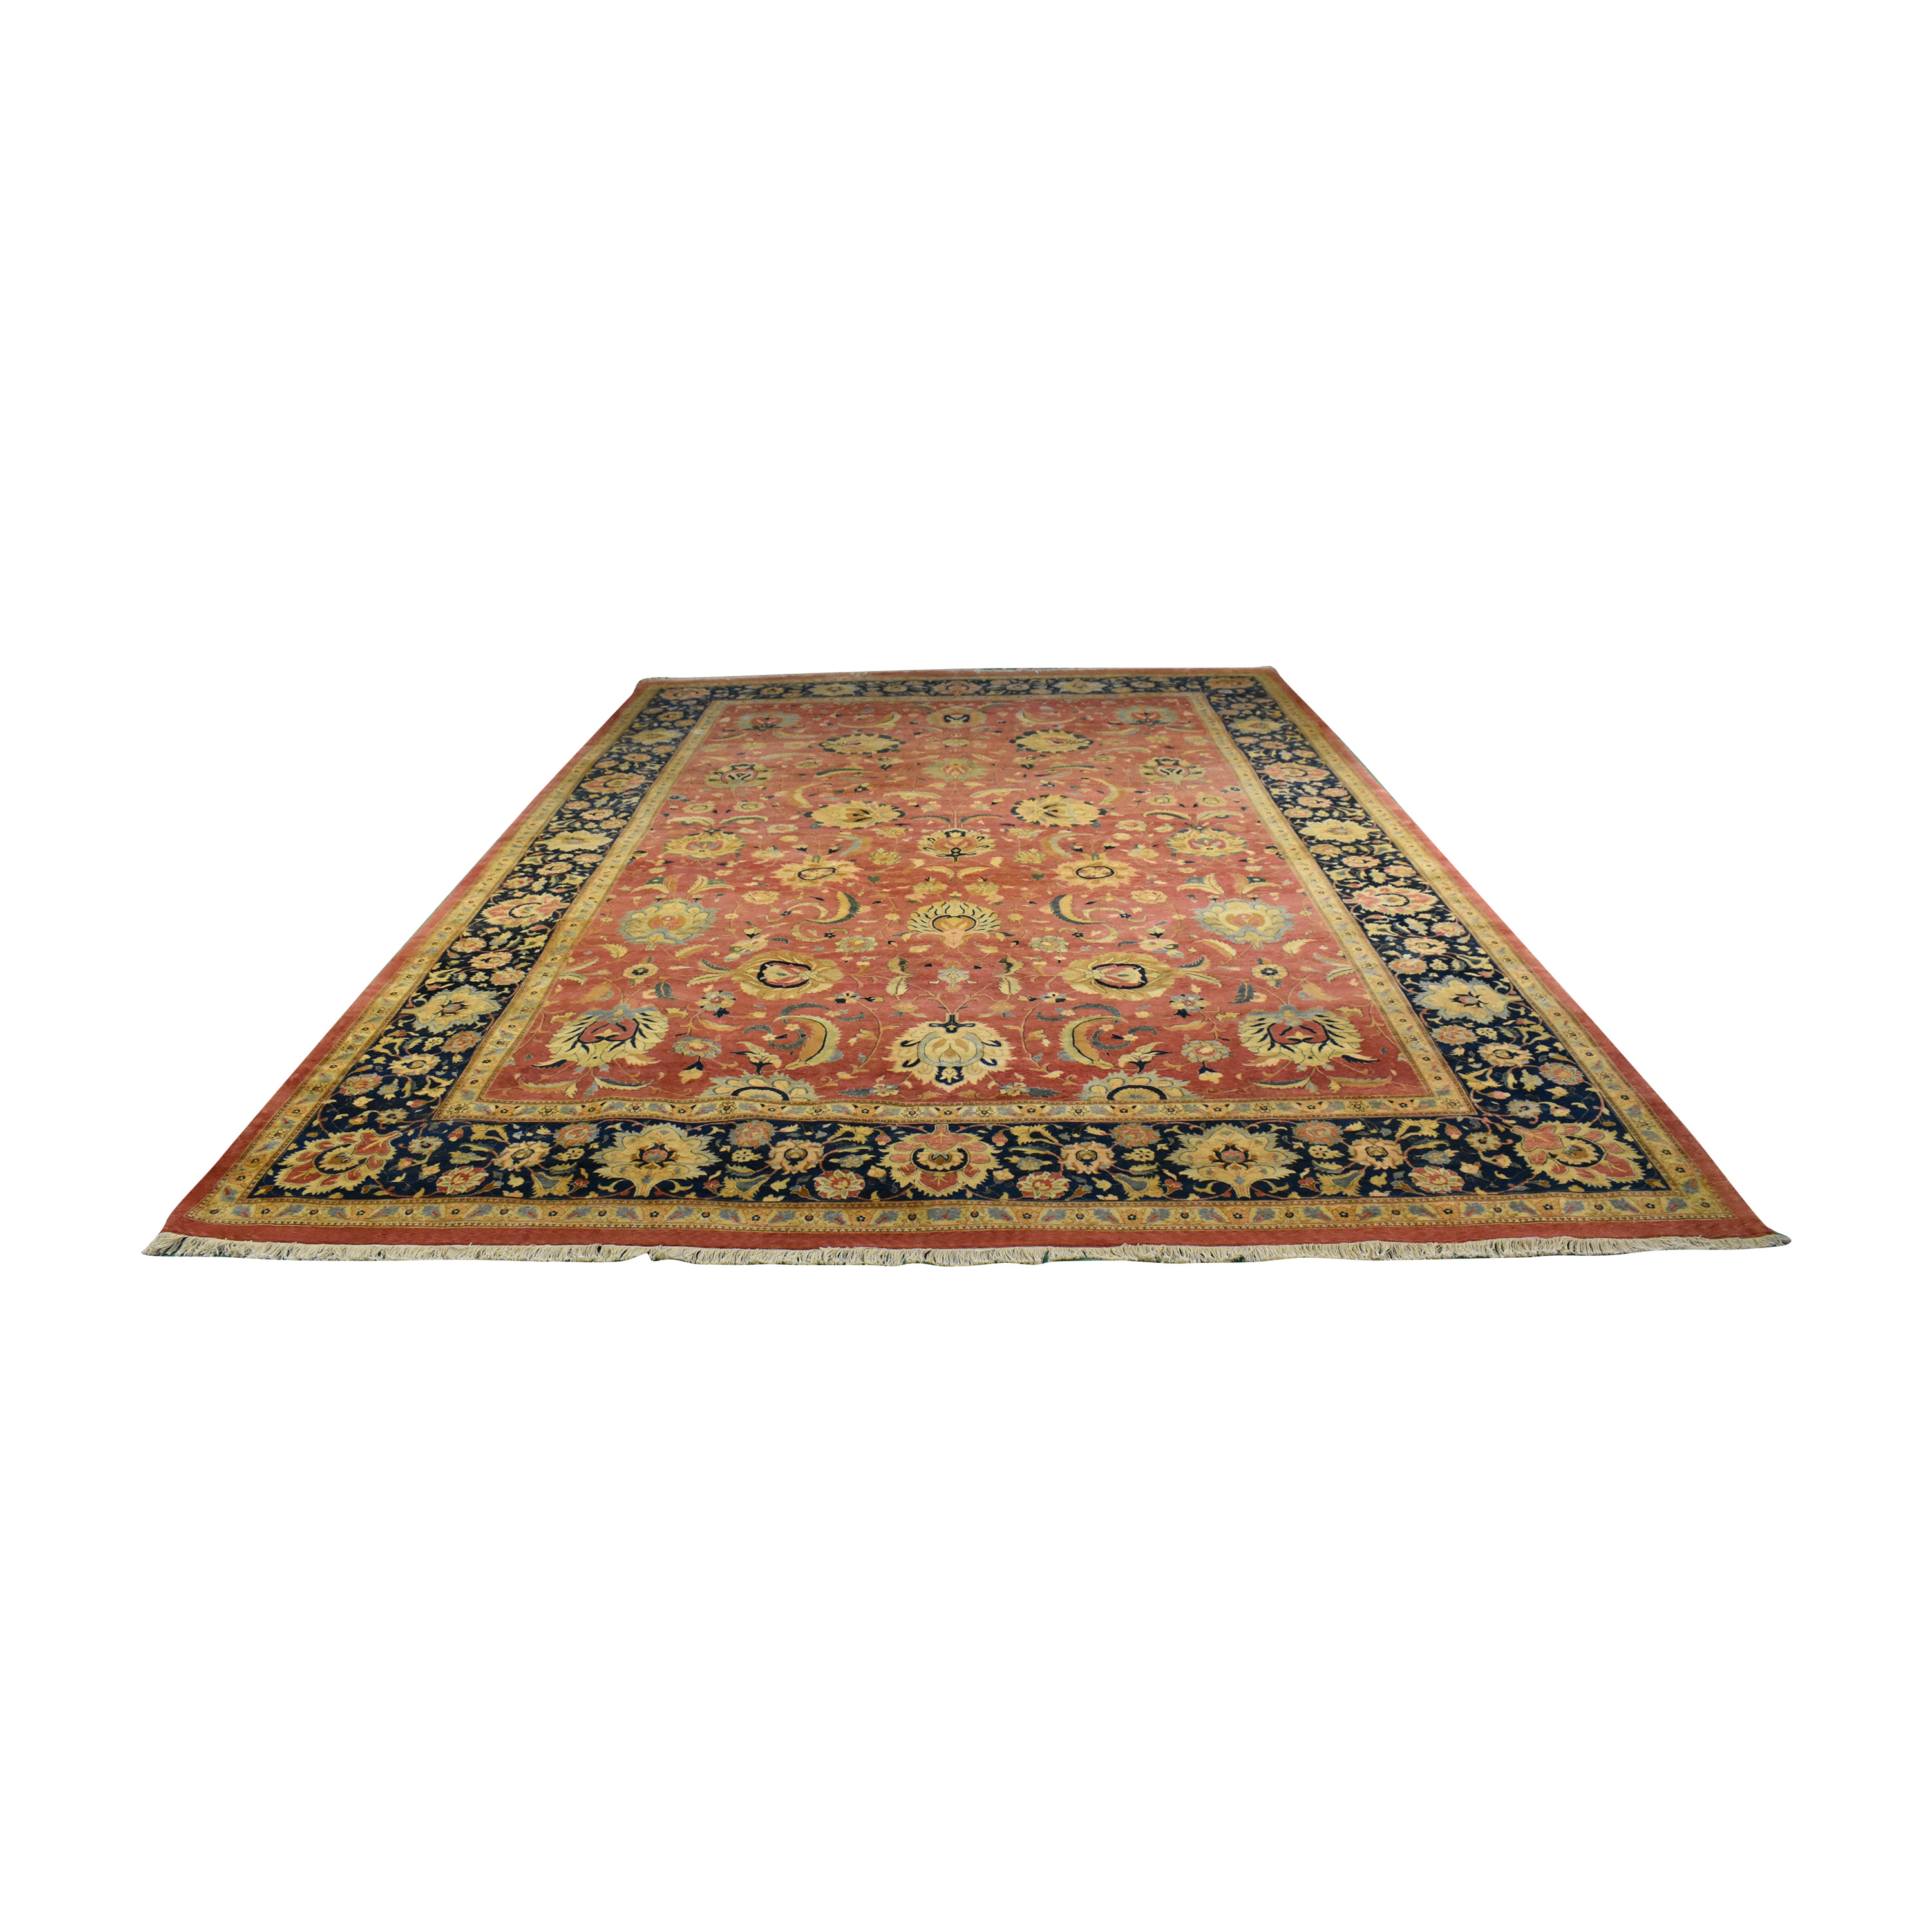 buy ABC Carpet & Home ABC Carpet & Home Traditional Area Rug online